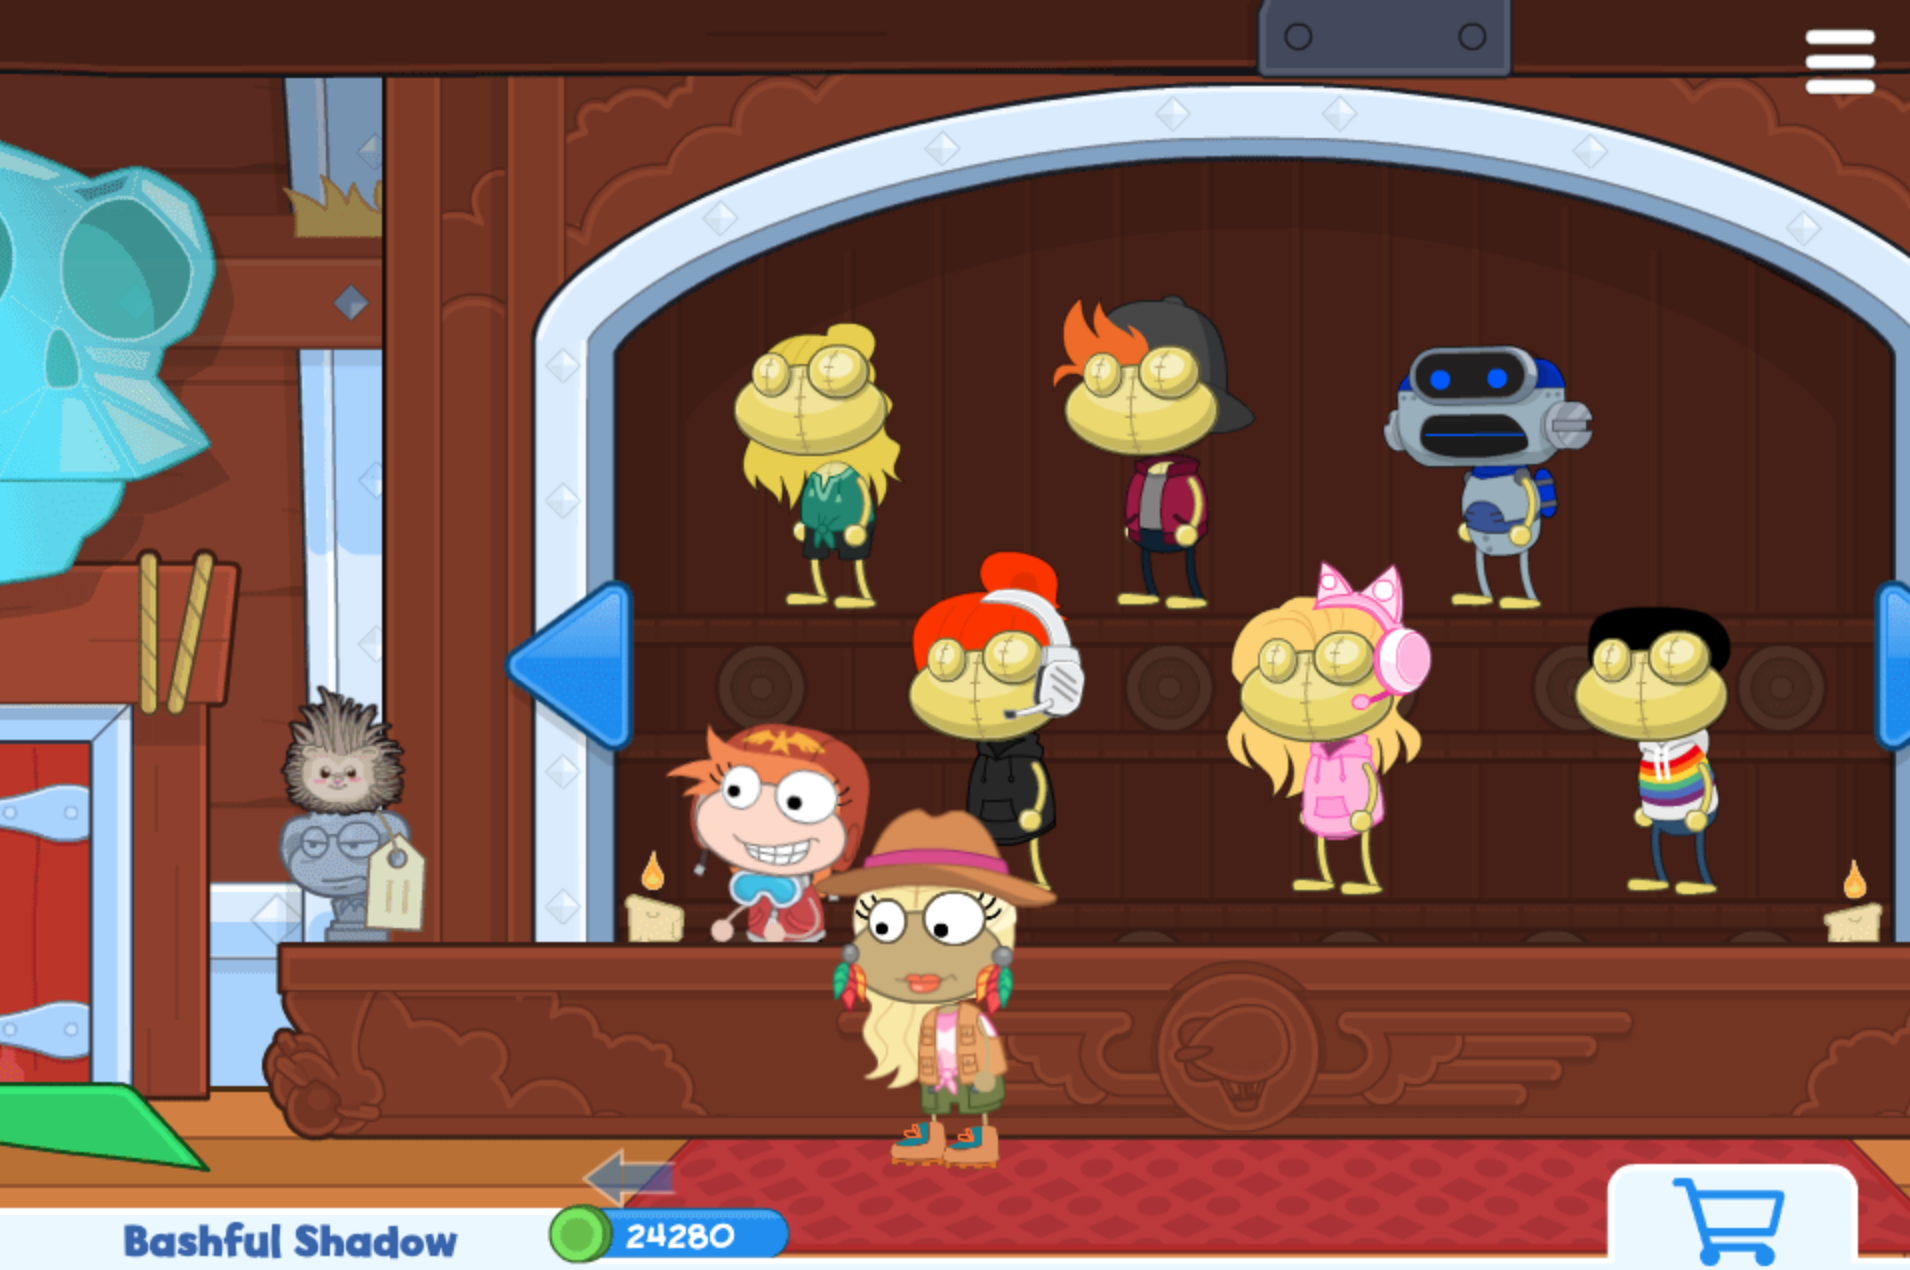 Poptropica store interior with characters